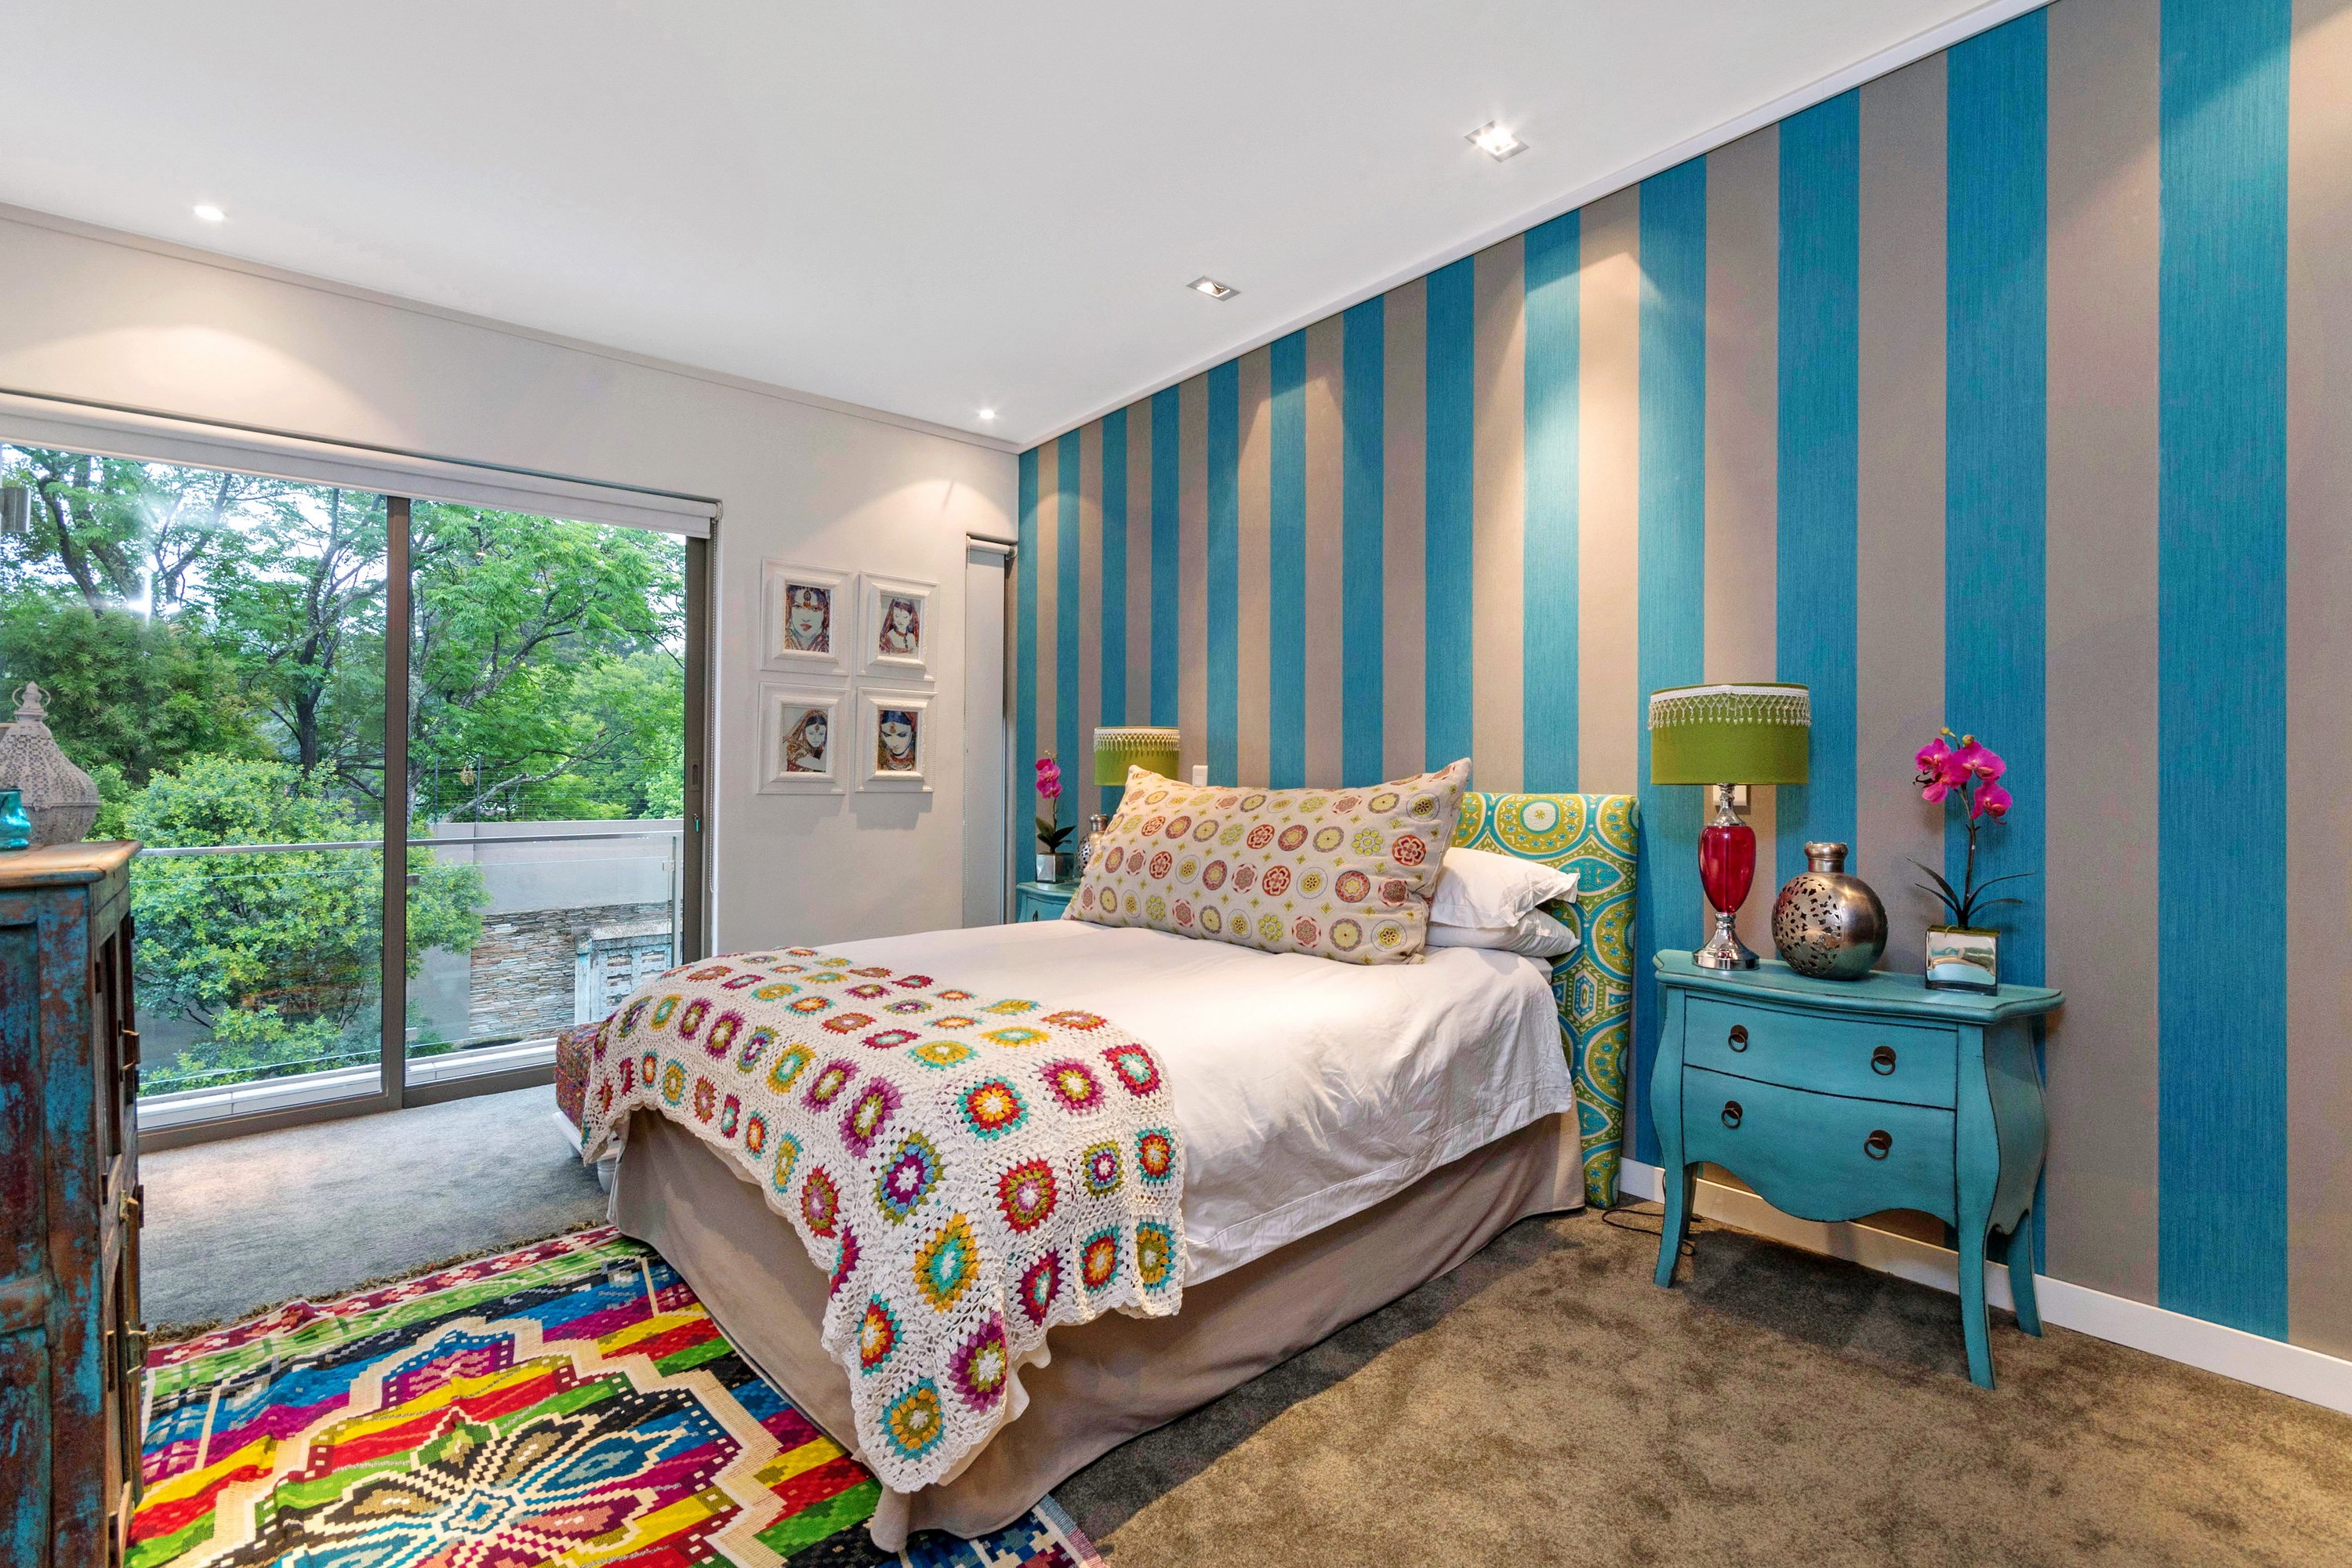 Teen Bedroom With Colorful Striped Accent Wall (Image 24 of 30)